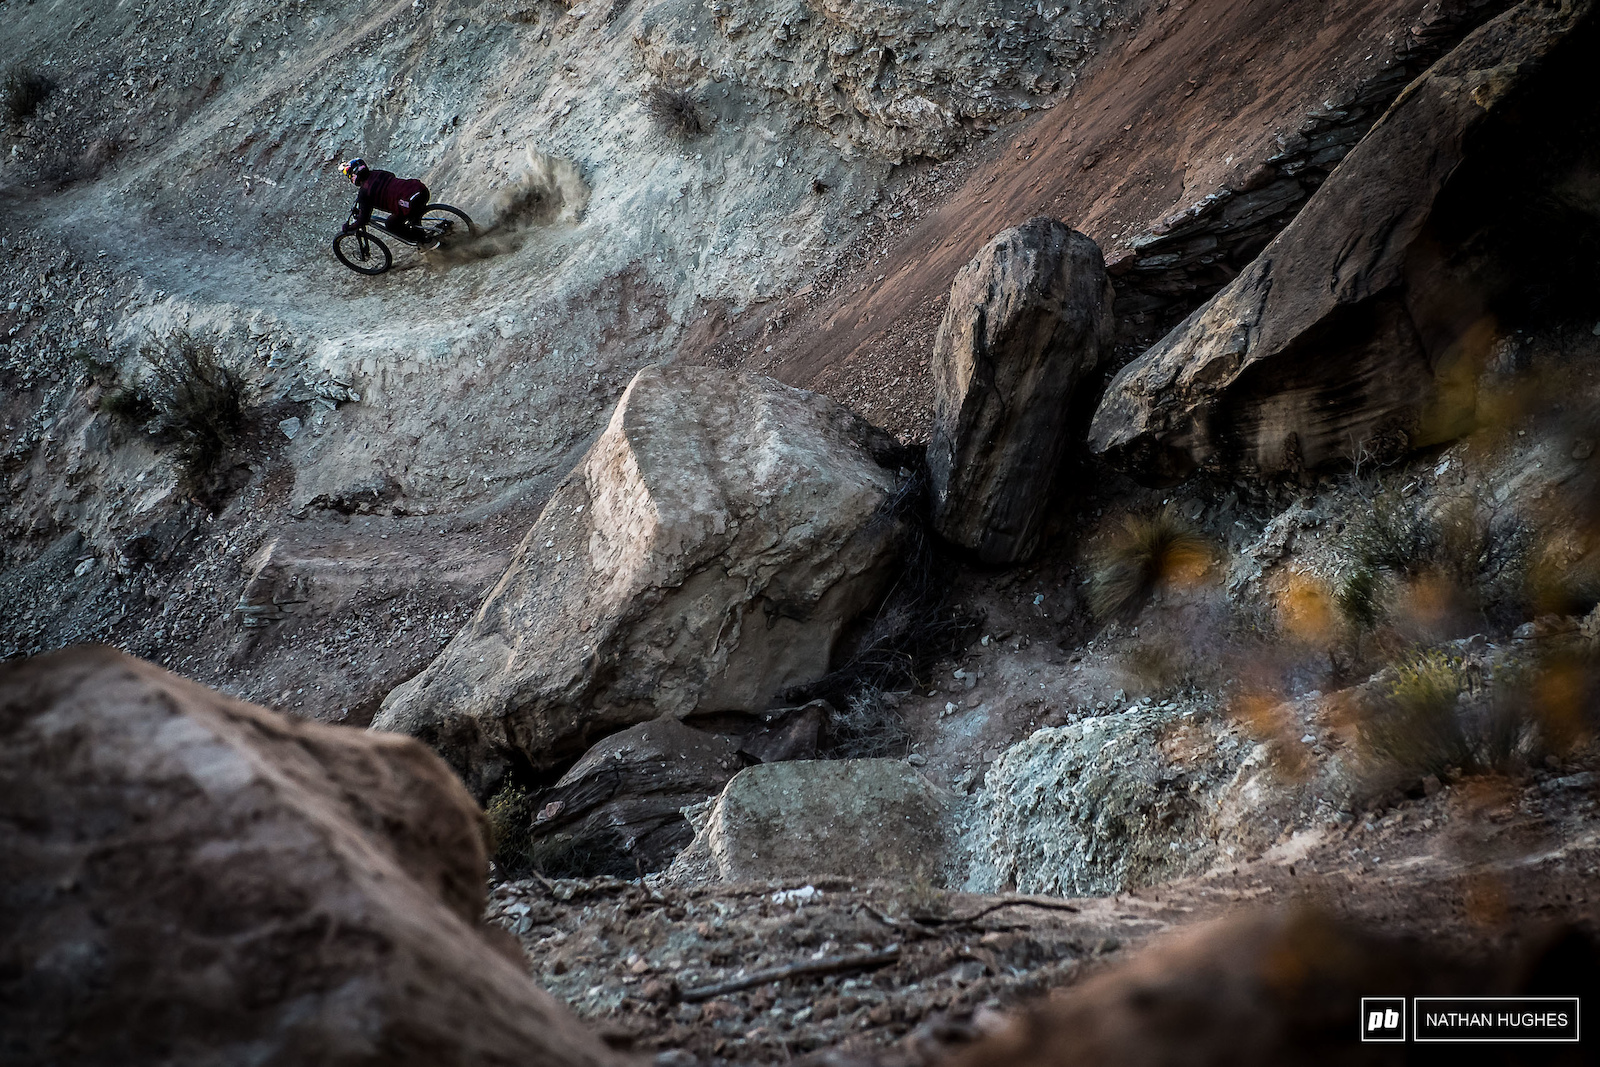 B-Sem slaying his rock tapper and roosting into the next section.